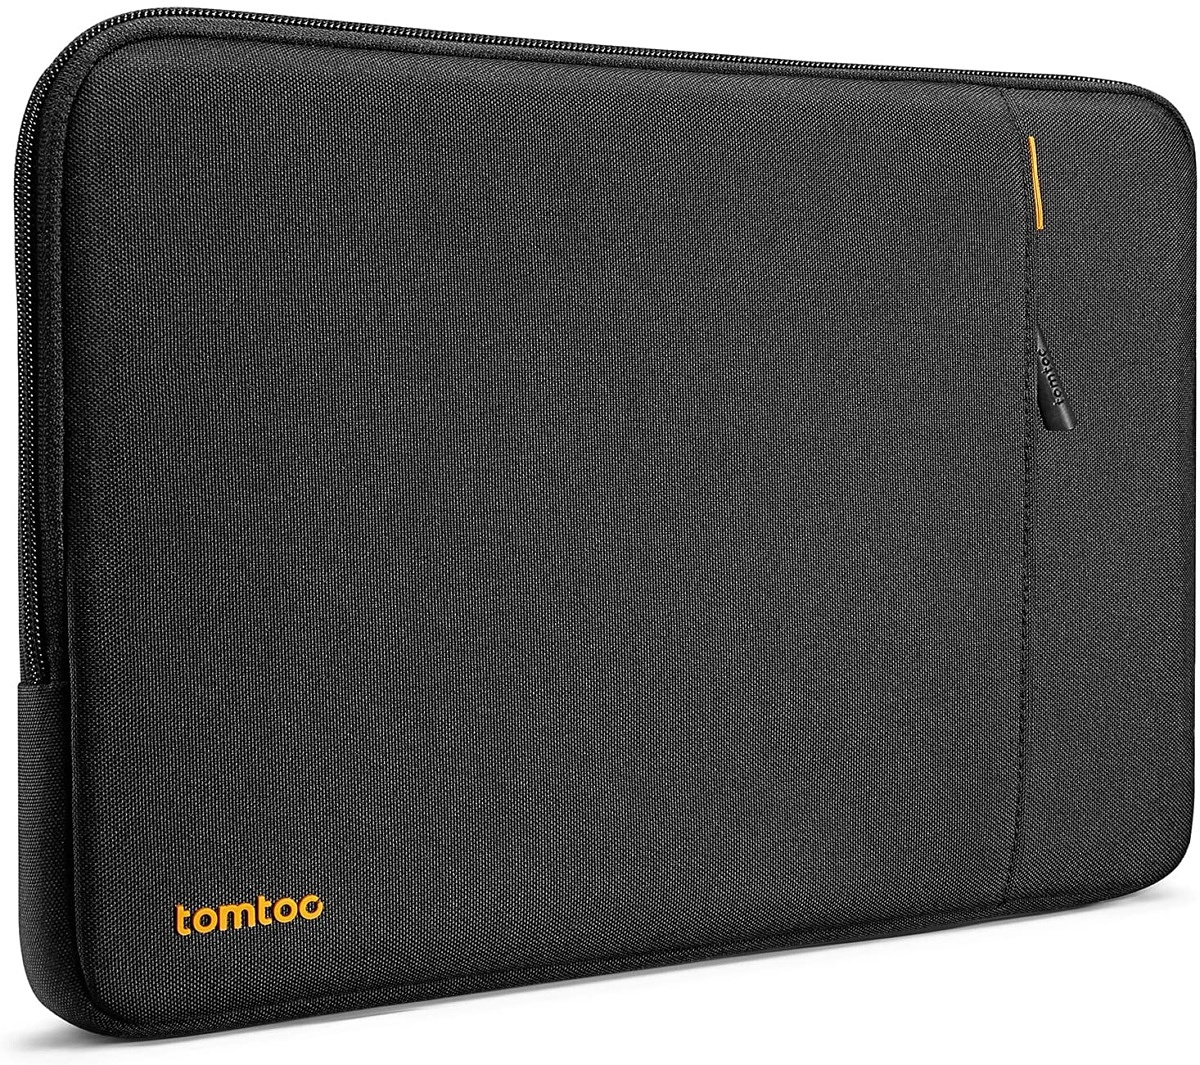 tomtoc 360° Spill-Resistant Laptop Sleeve